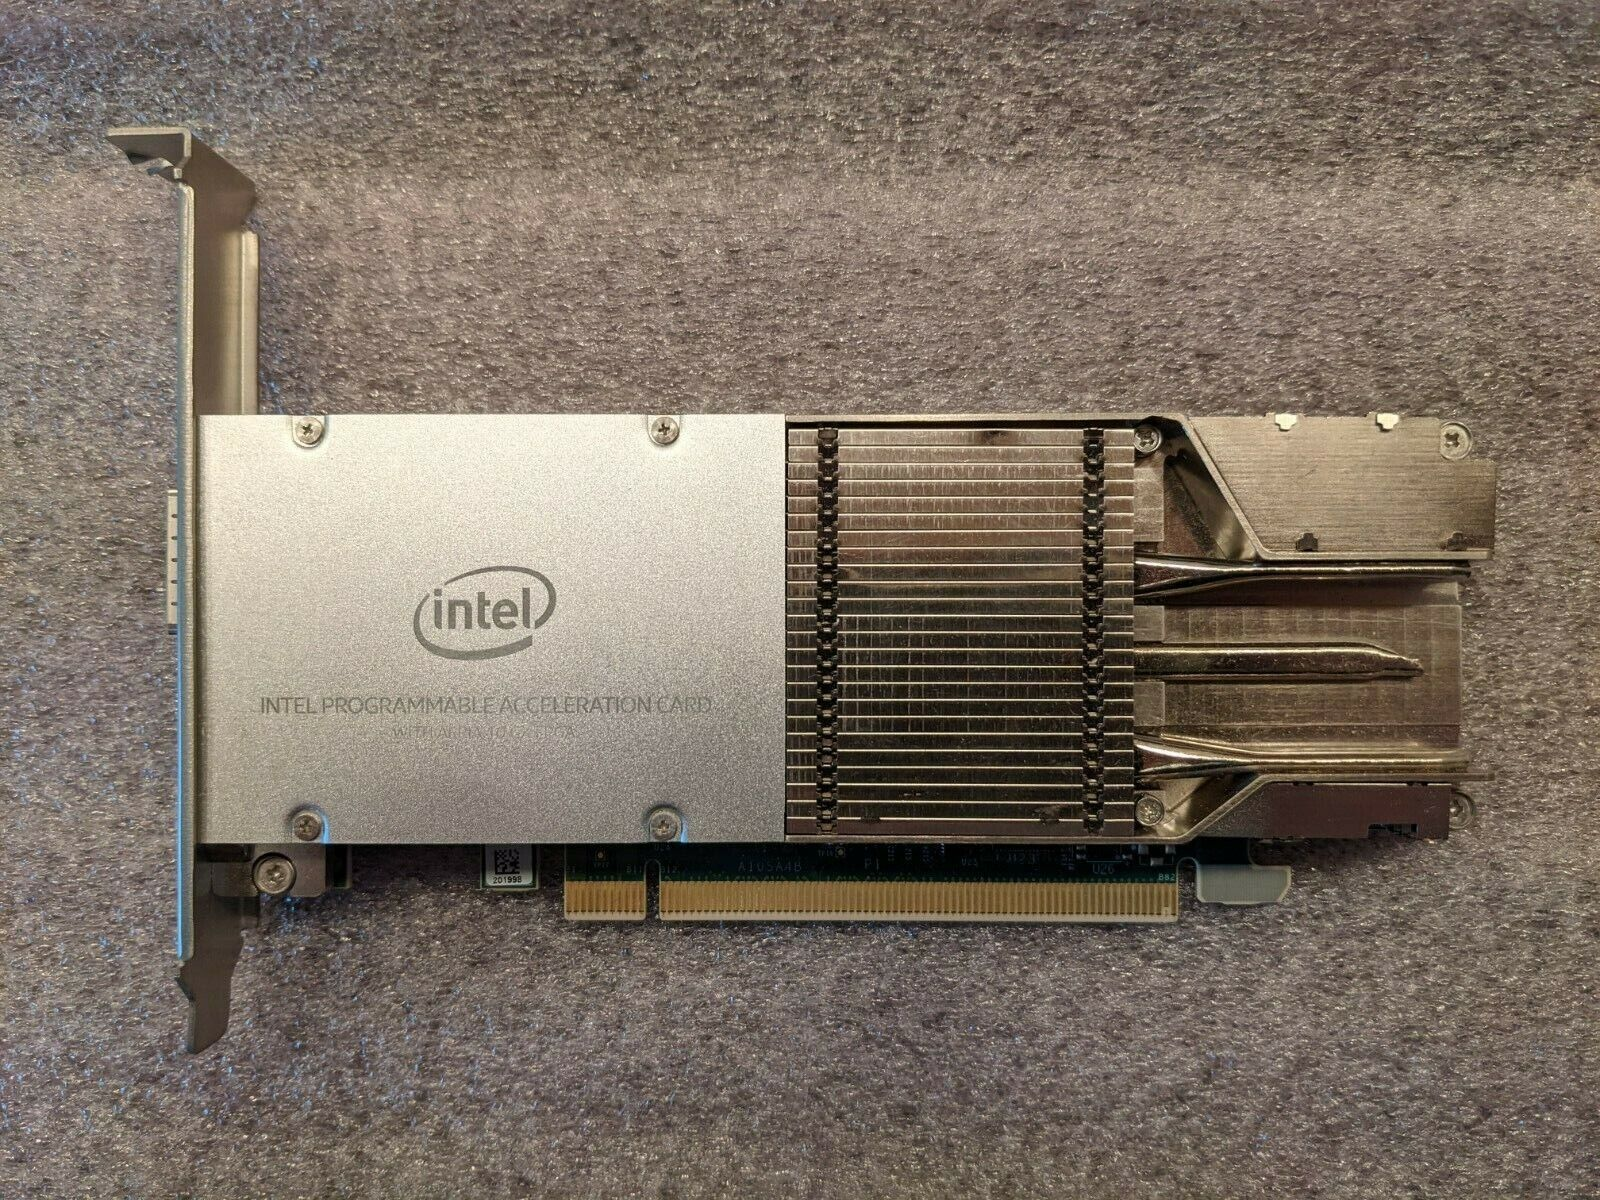 Intel Programmable Acceleration Card PAC With ARRIA 10 GX FPGA NEMKO